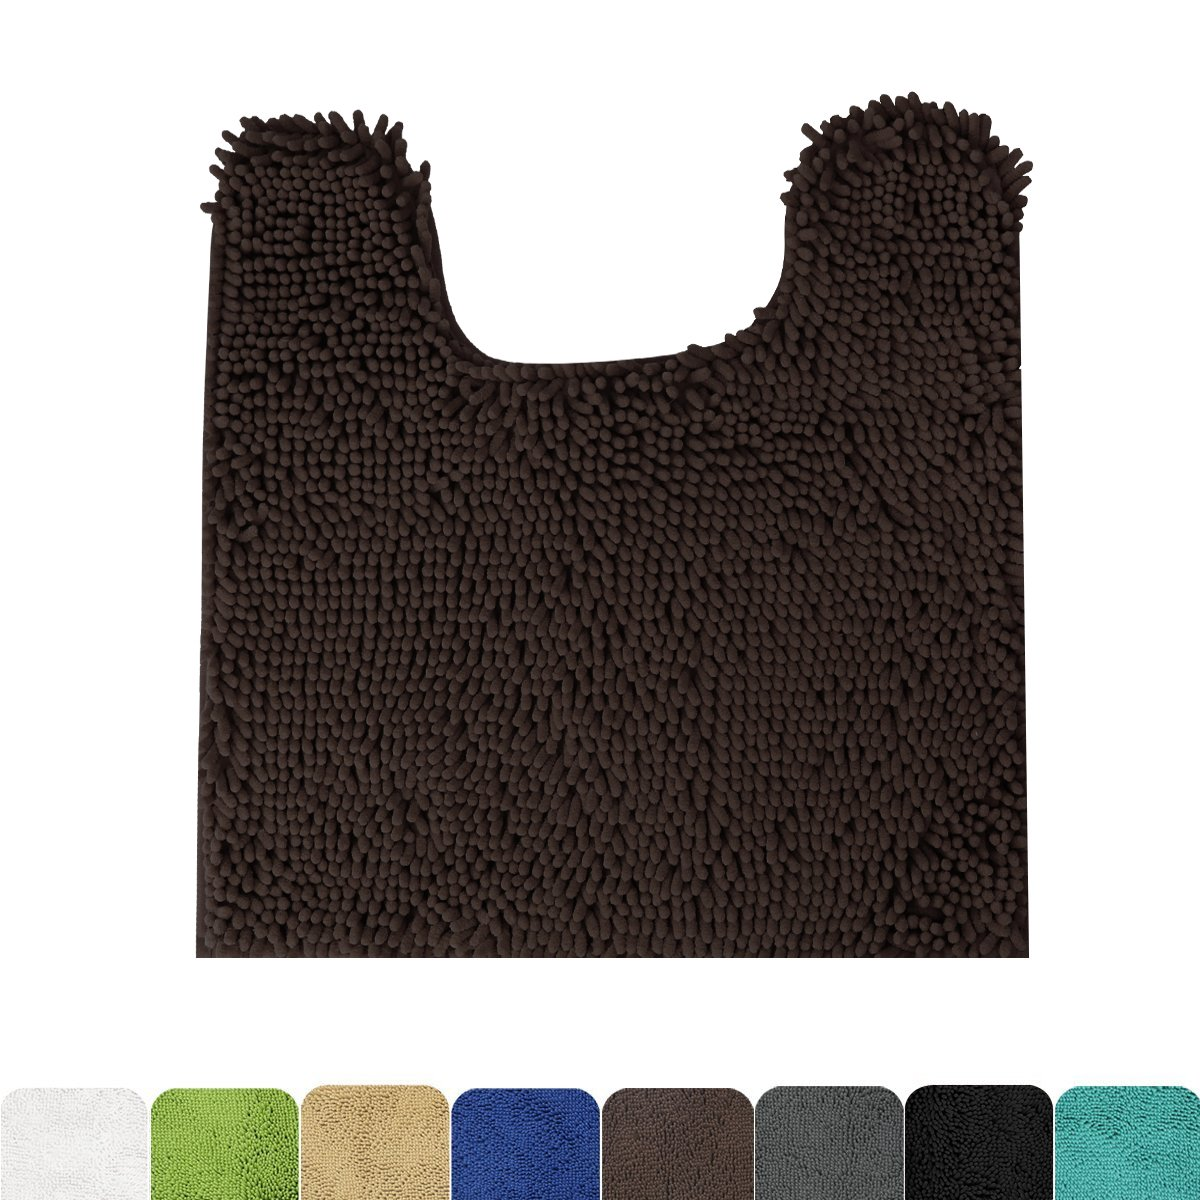 MAYSHINE Contour Bath Mats for toilet | nonslip | Soft | Absorbent water | Dry Fast | Machine-washable (20''x24'' Brown) by MAYSHINE